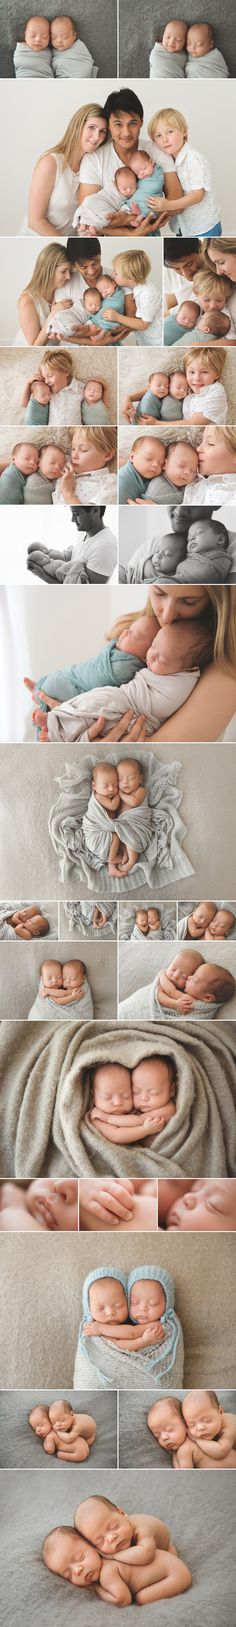 So adorable, but want to remember these ideas for just one newborn!